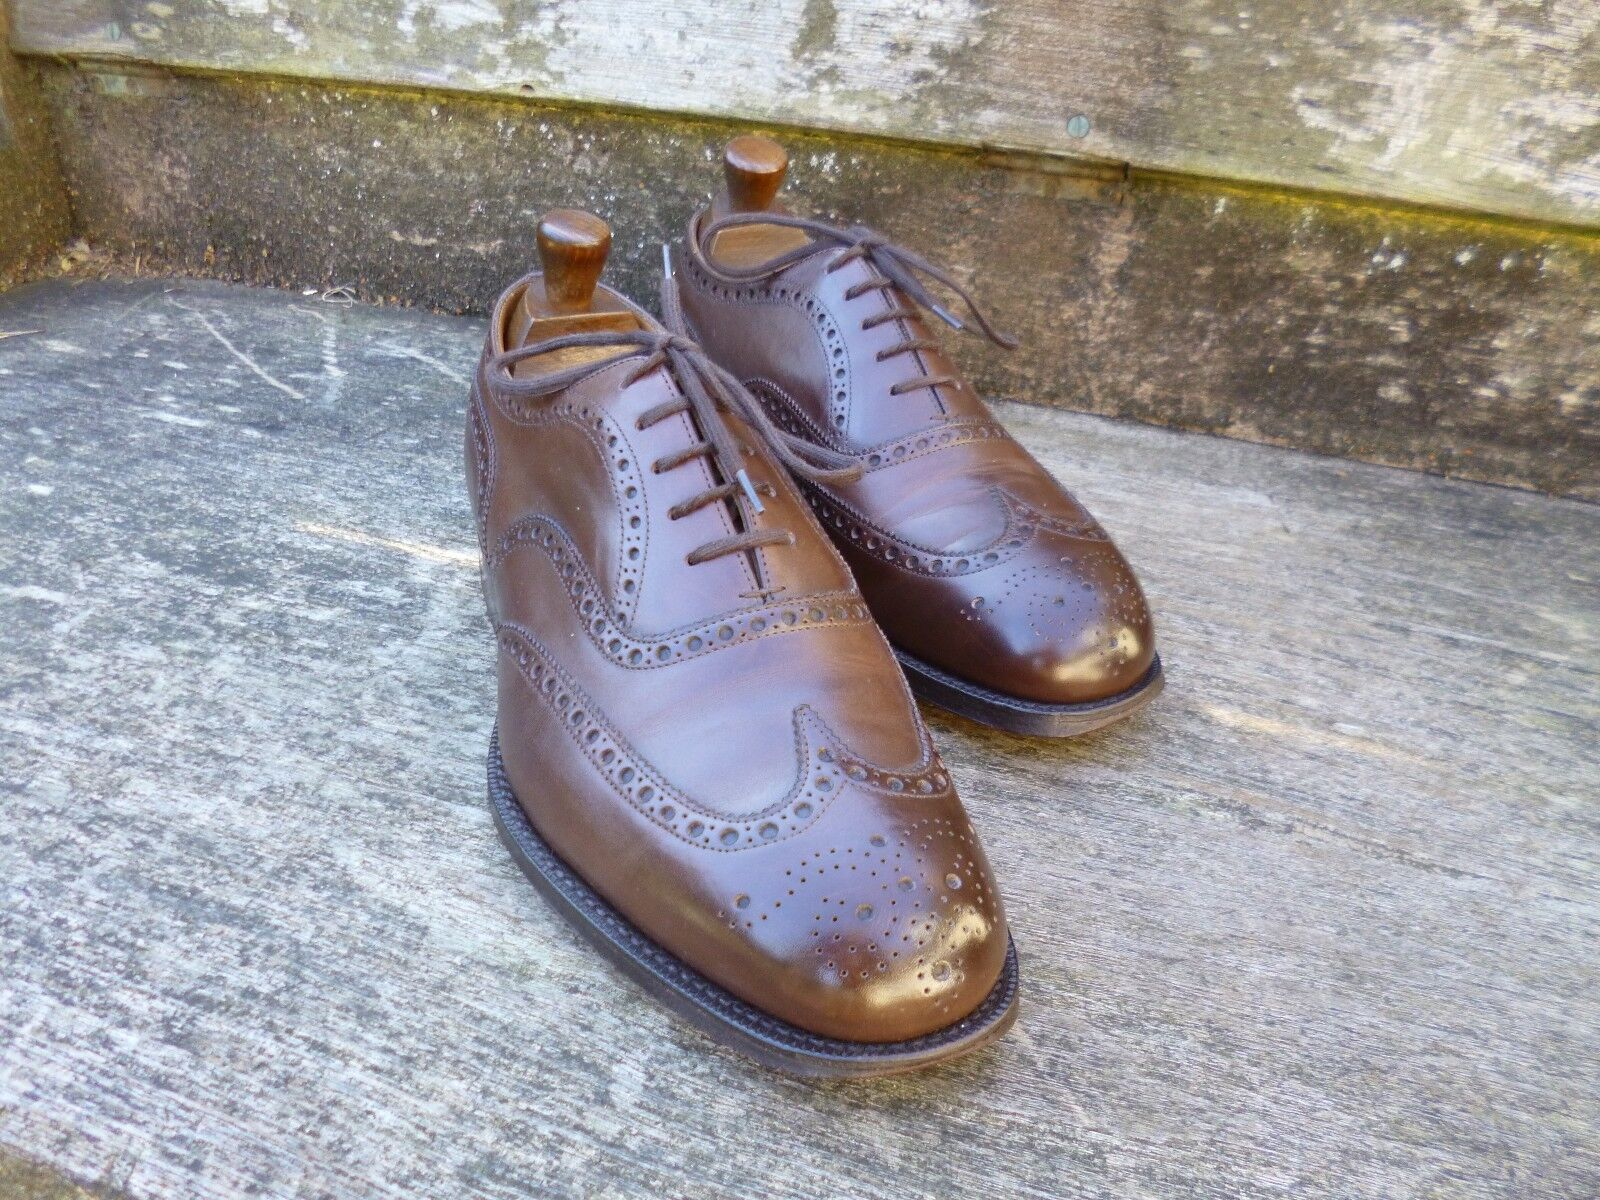 CHURCH BROGUES – BROWN - (WIDE) – CHETWYND -EXCELLENT-AS WORN BY JAMES BOND